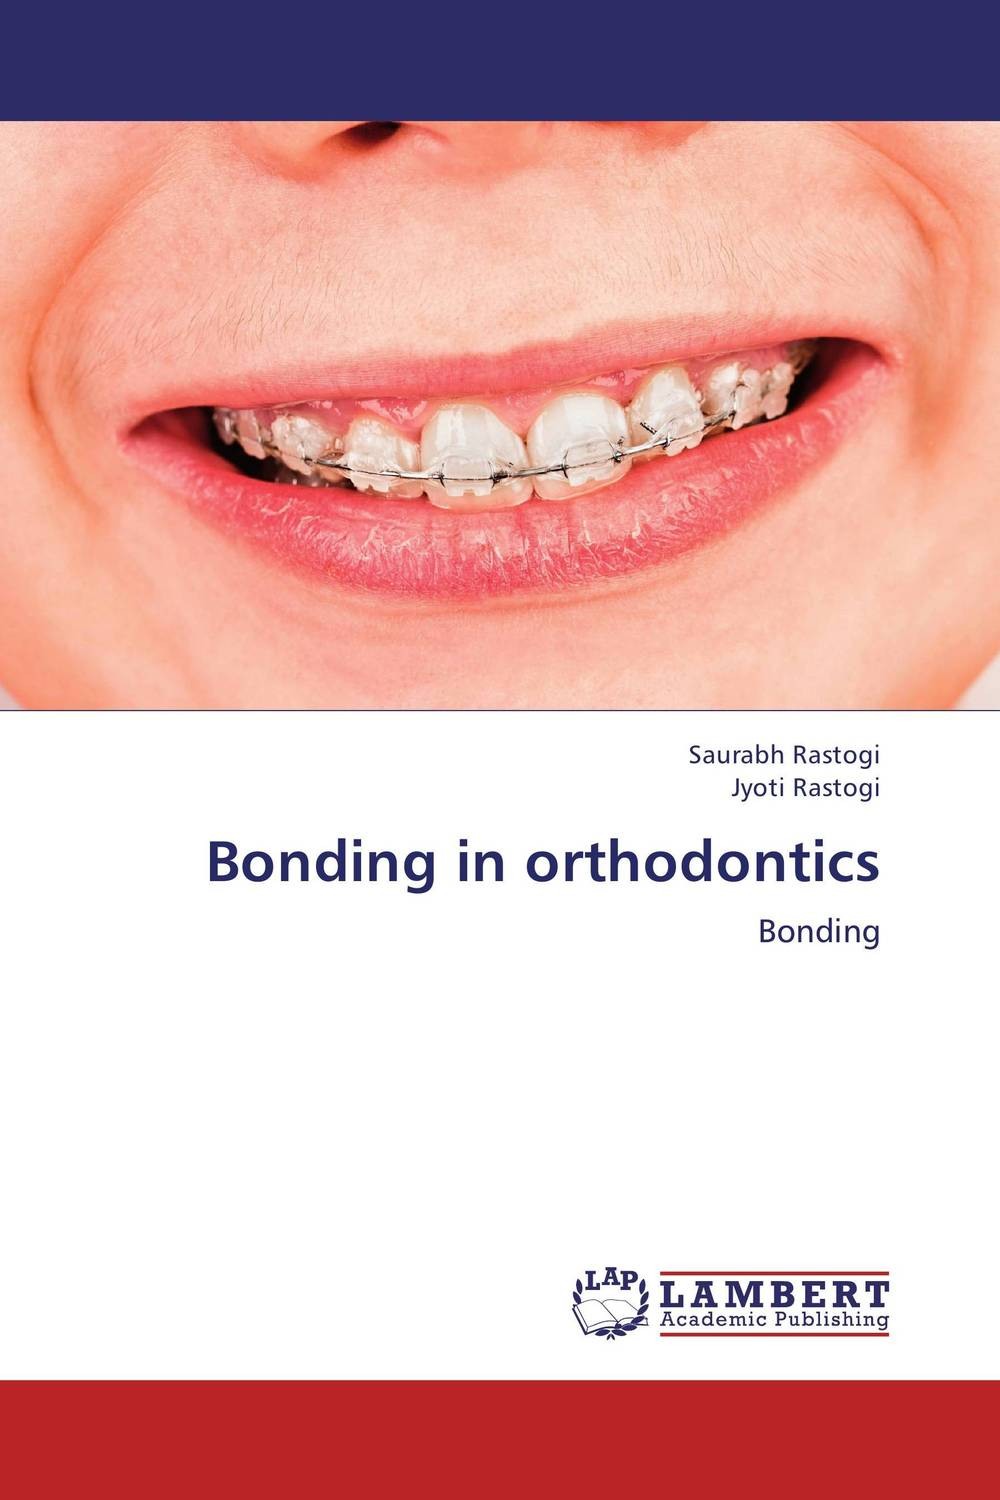 Bonding in orthodontics evaluation of carbon capture and storage as a best available technique